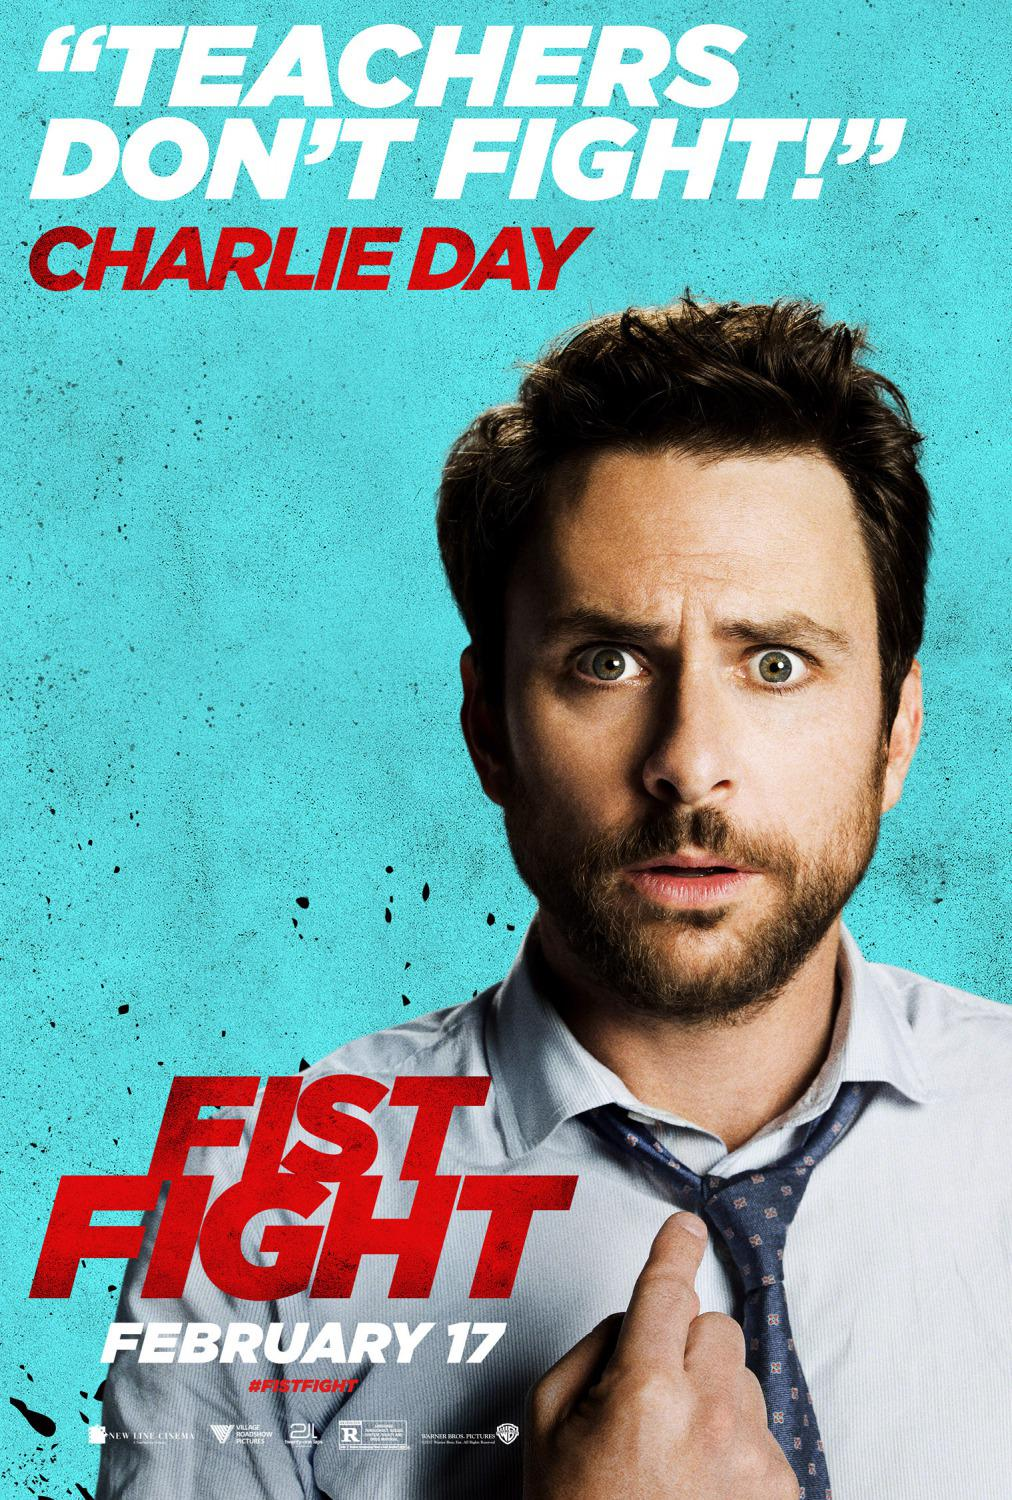 Fist Fight - Teachers don't fight - Charlie Day